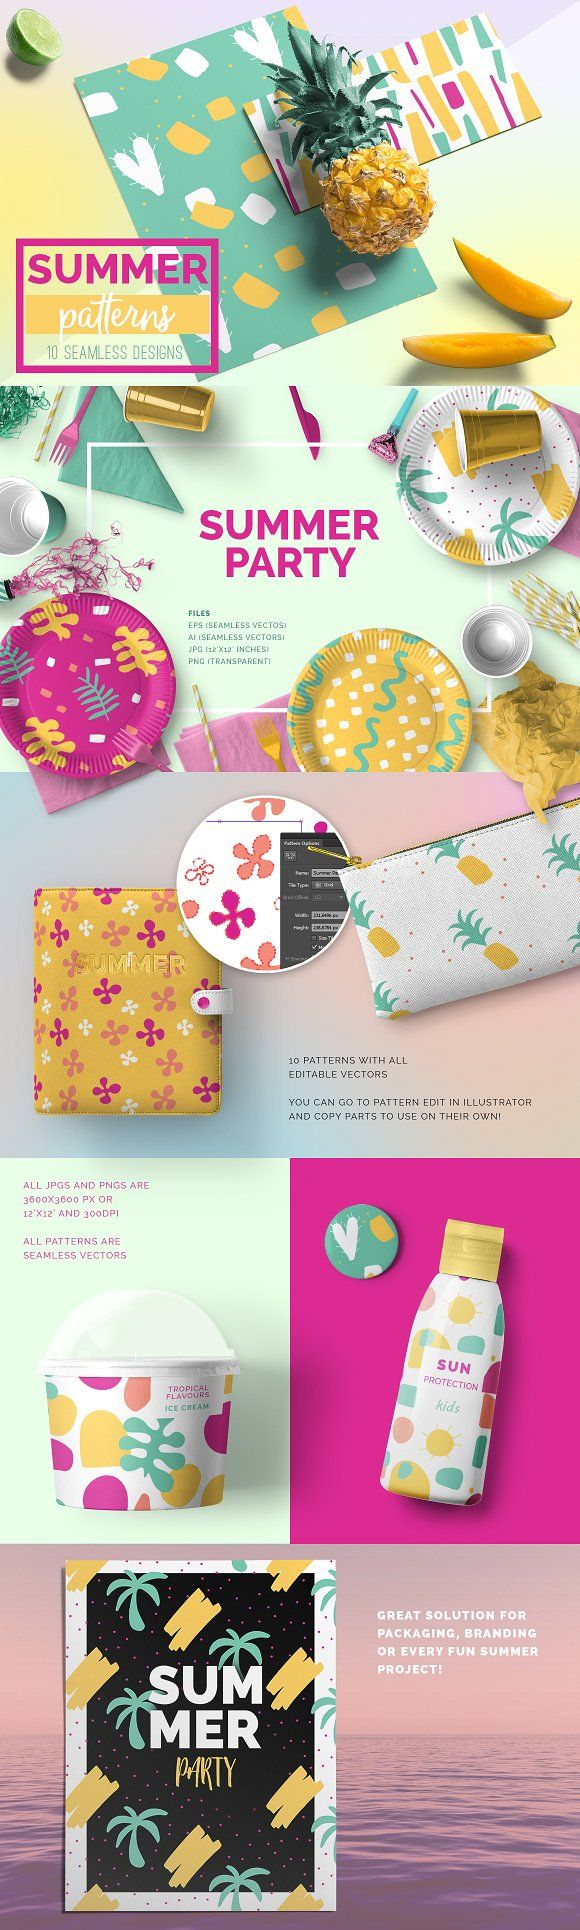 Summer Seamless Patterns by Youandigraphics on @creativemarket